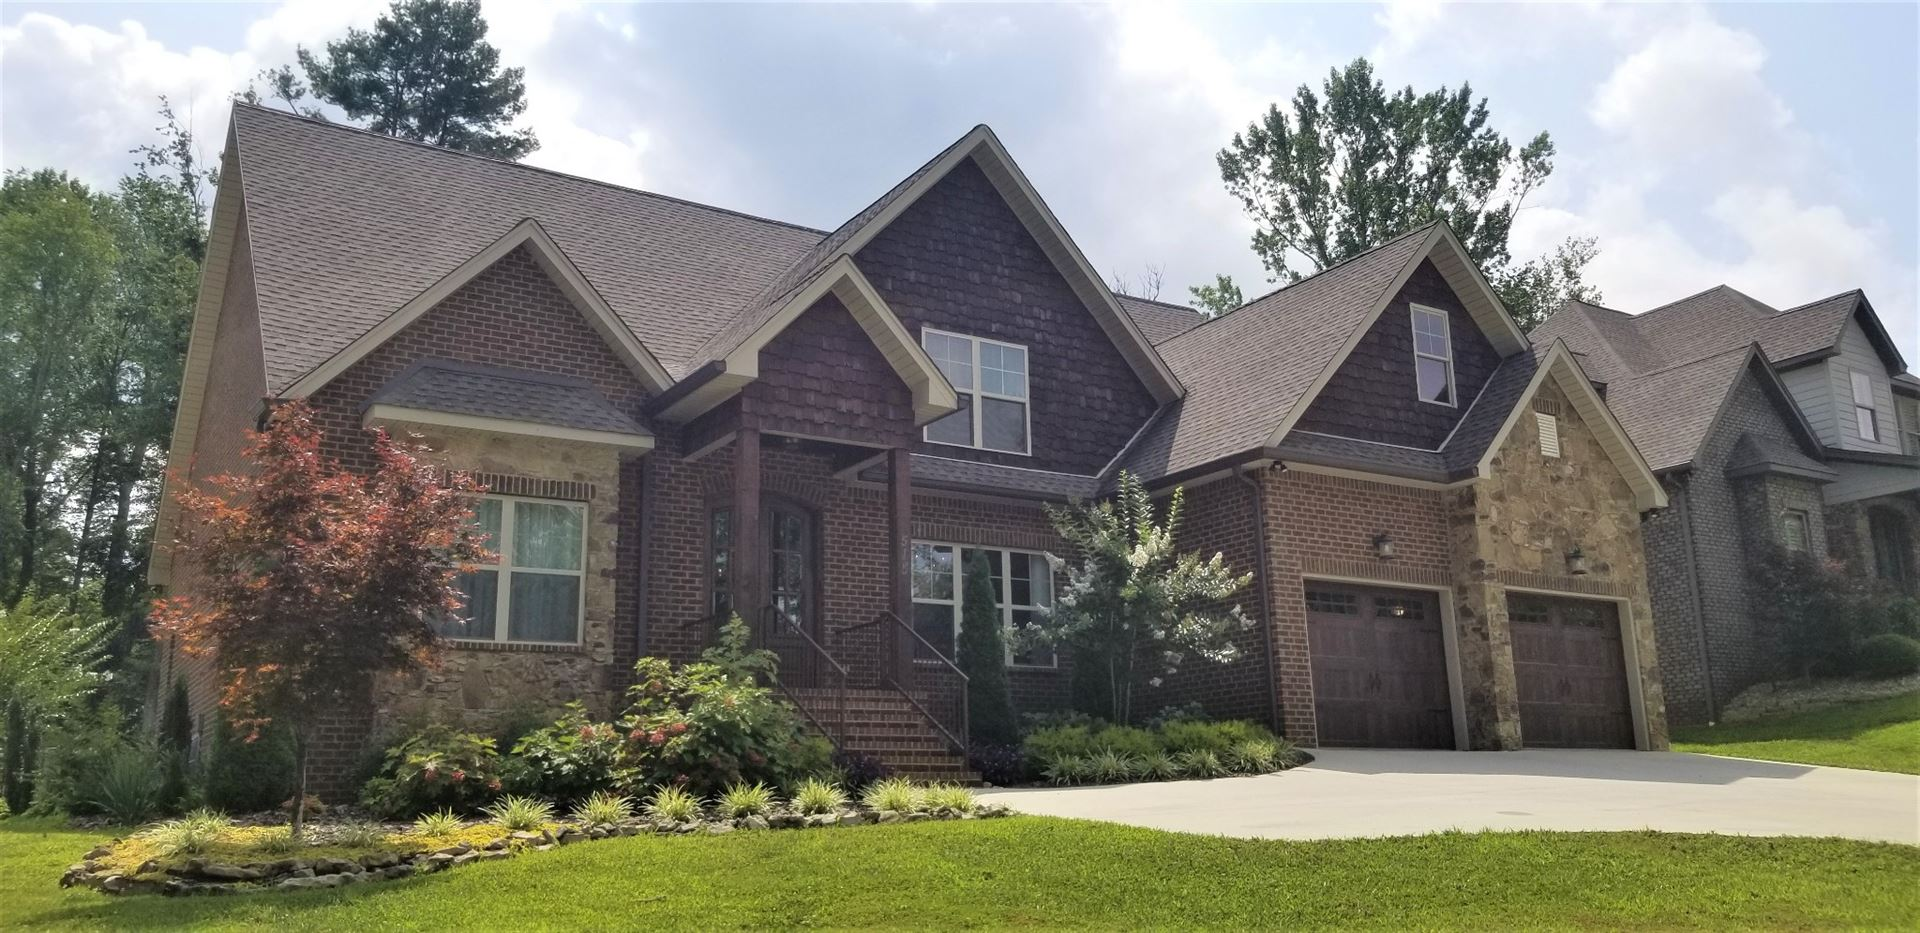 515 N Pickard Ave, Cookeville, TN 38501 - MLS#: 2276768